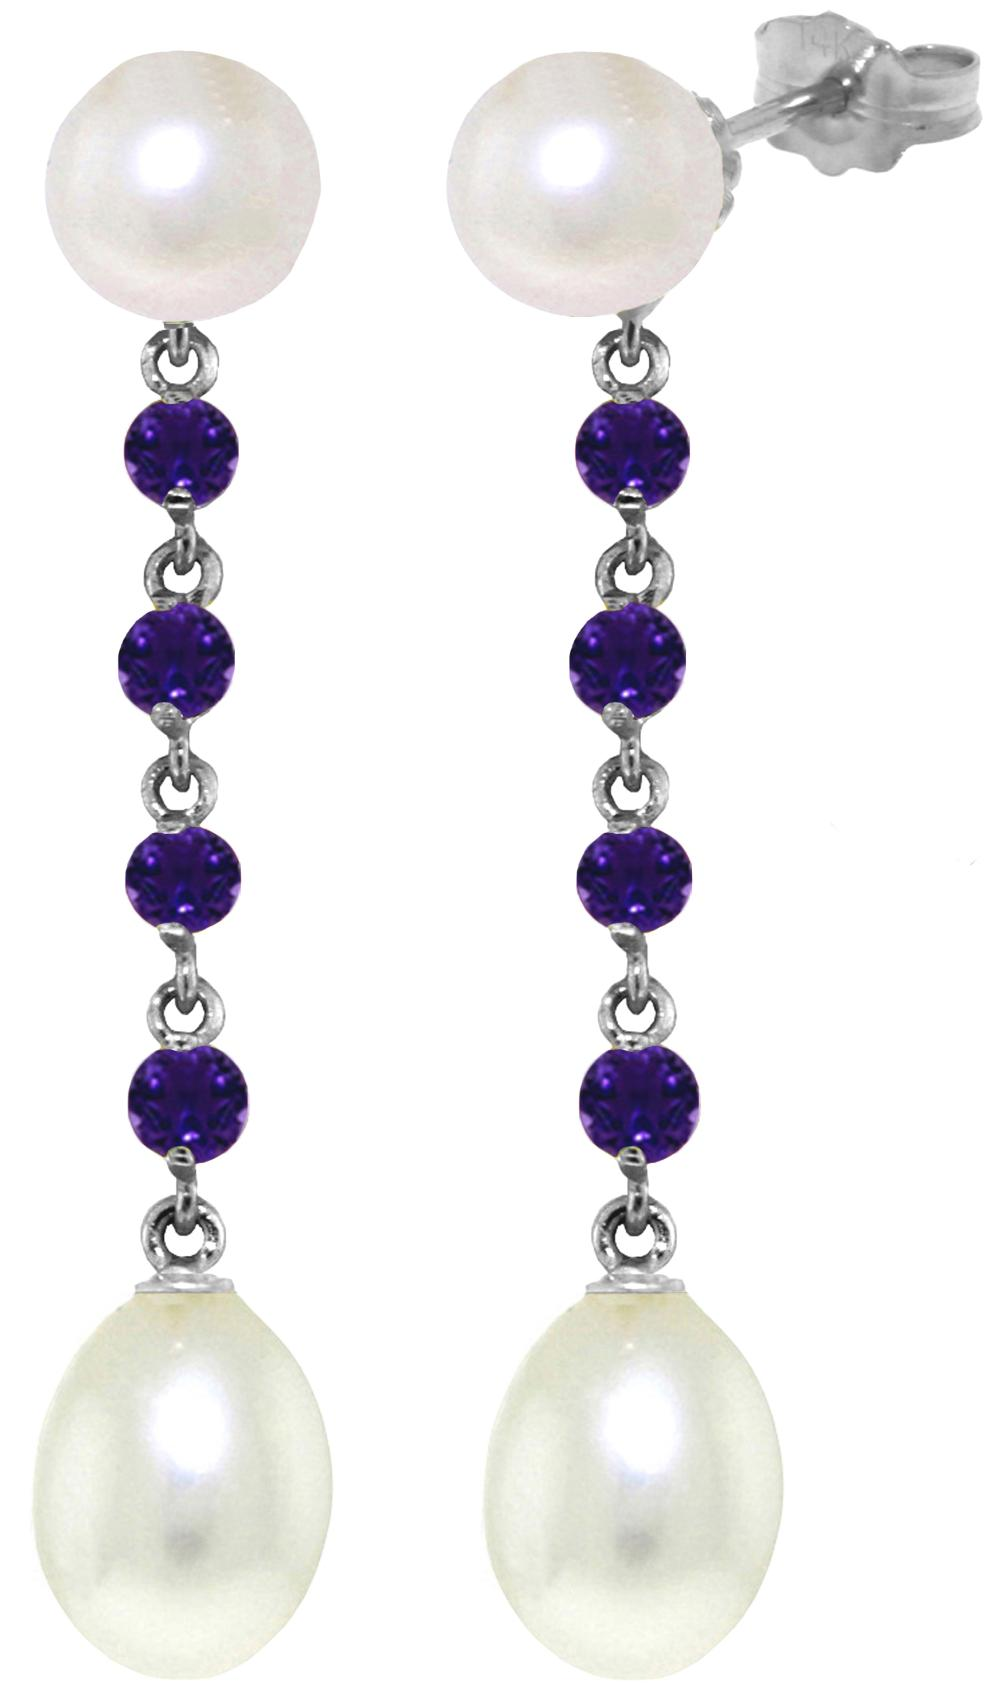 Genuine 11 ctw Pearl & Amethyst Earrings Jewelry 14KT White Gold - REF-28P8H